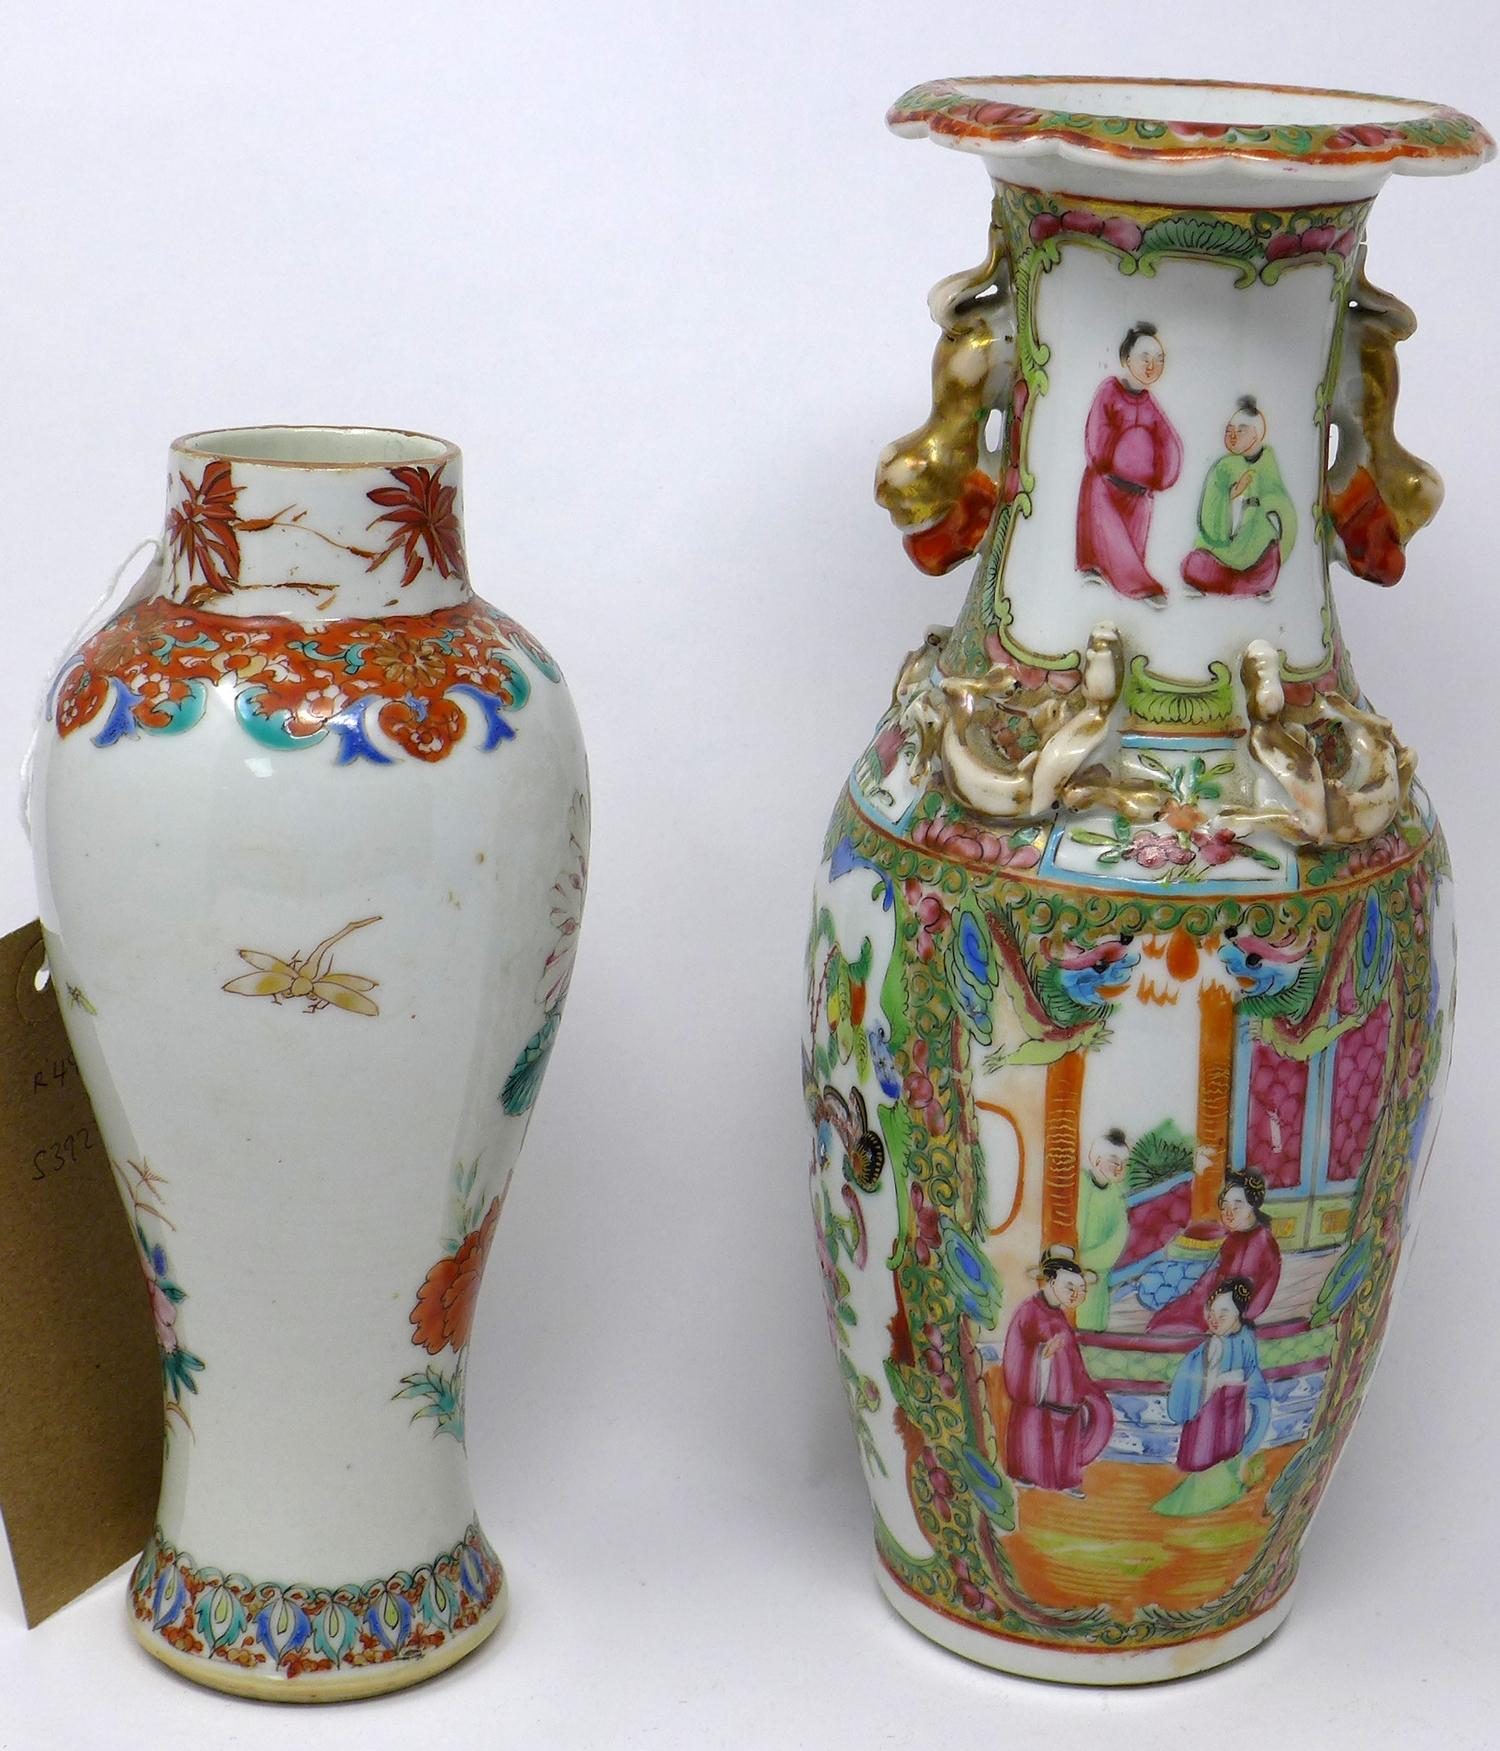 Lot 55 - Two 19th century, Chinese vases: 1 Canton famille rose example H: 25cm and other H: 20cm